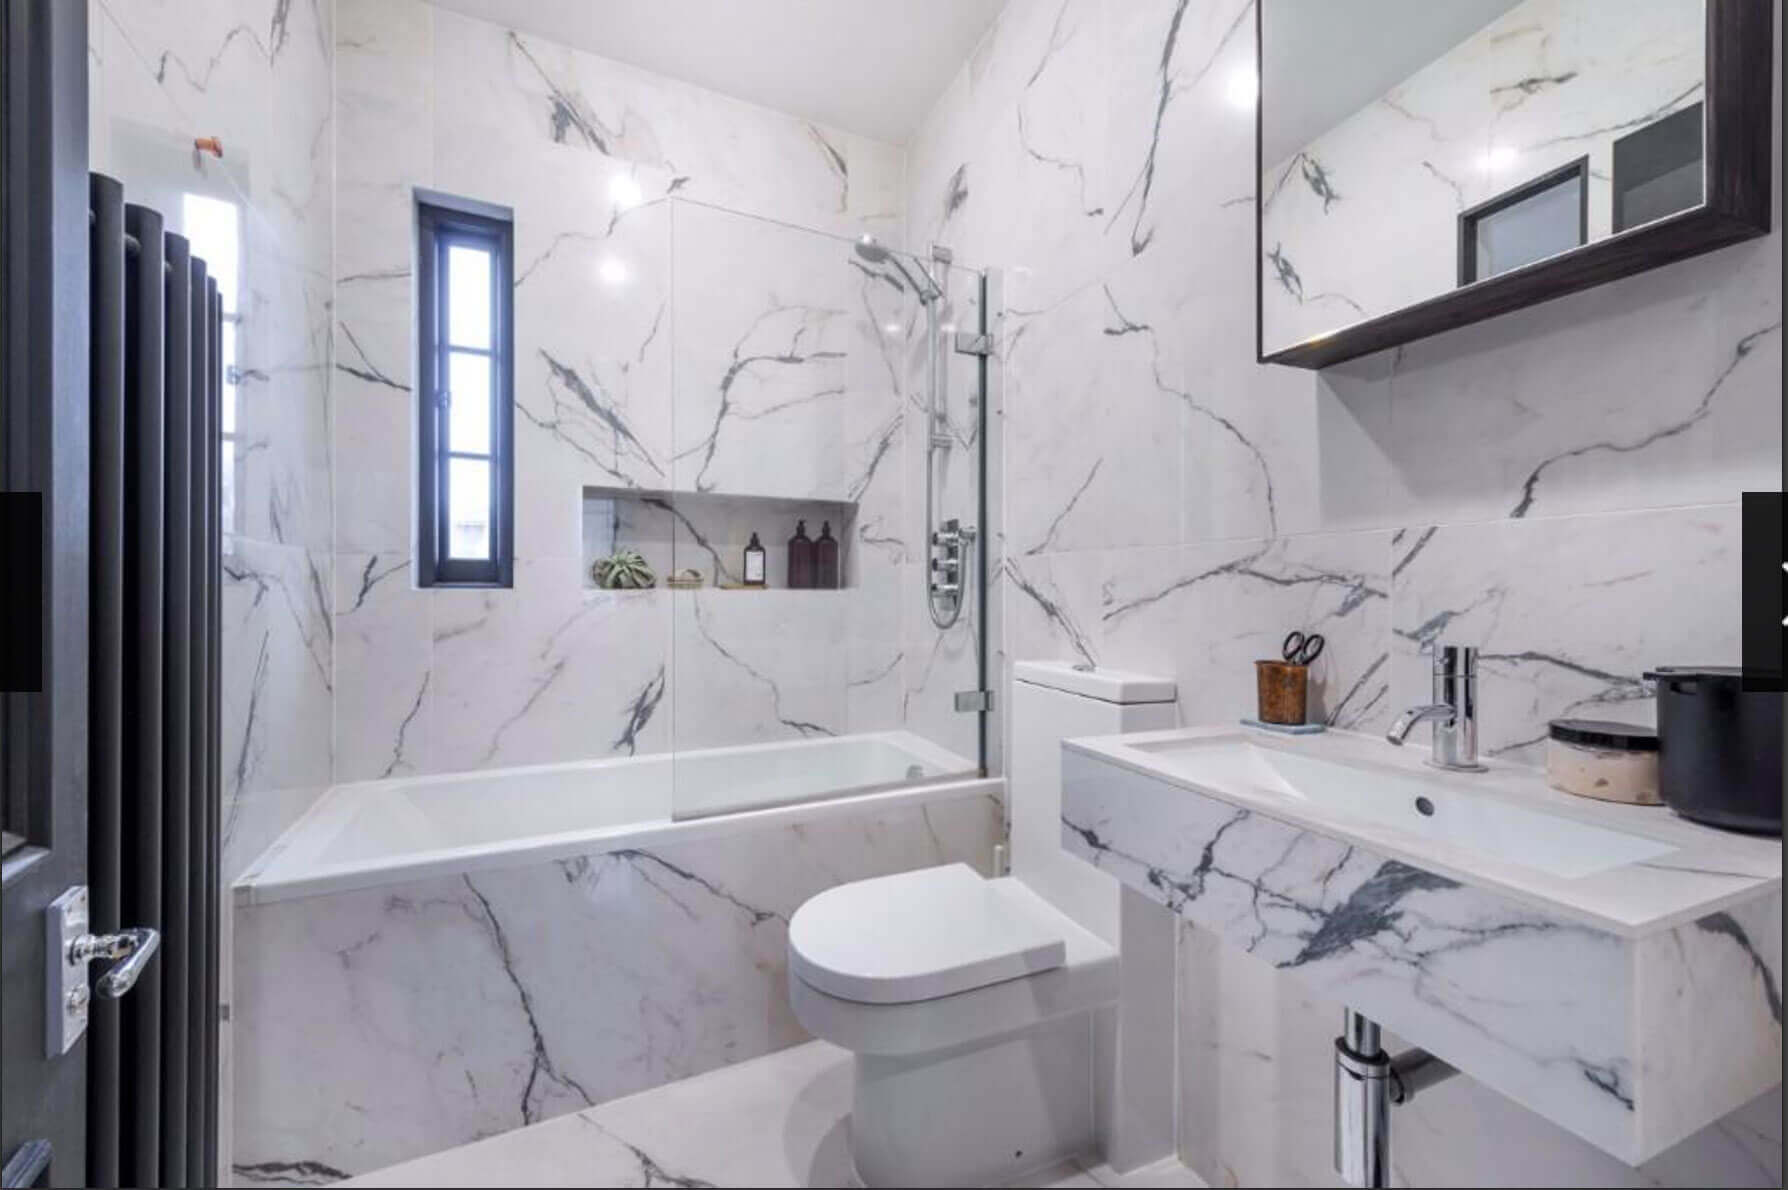 Porcelain Bathroom Tiles - London - Clay and Rock